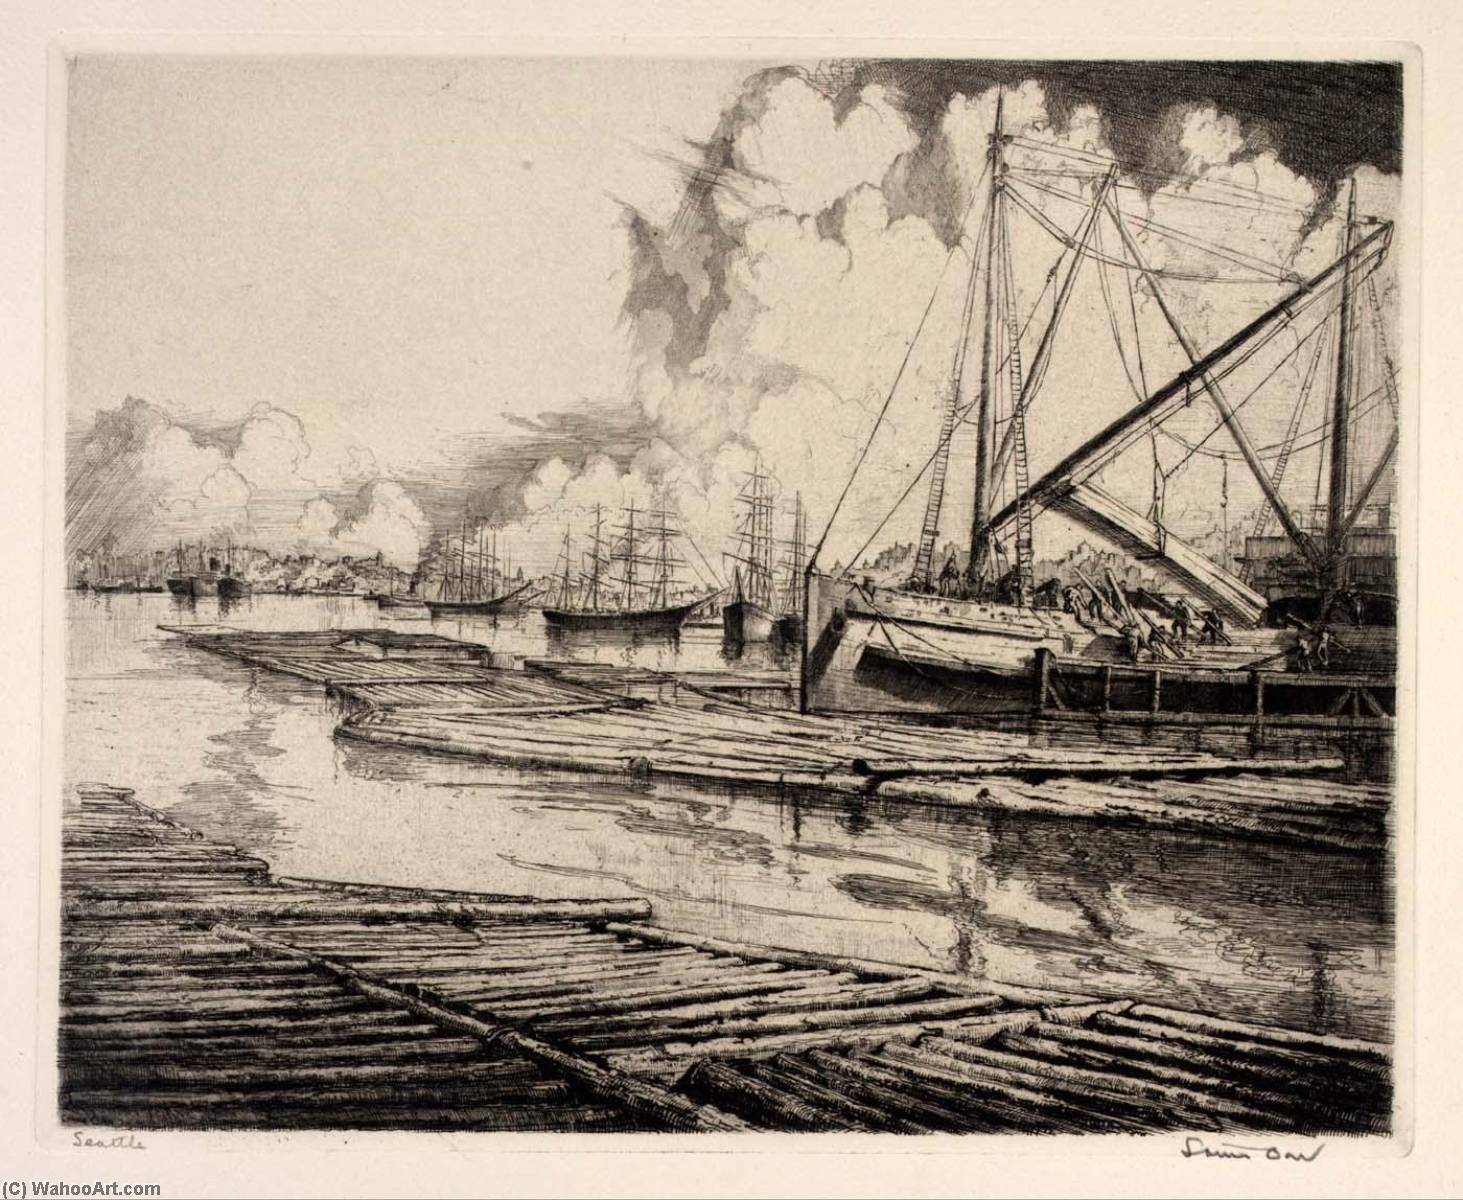 (Ports de lamérique , portefeuille ) Seattle, eauforte de Louis Orr